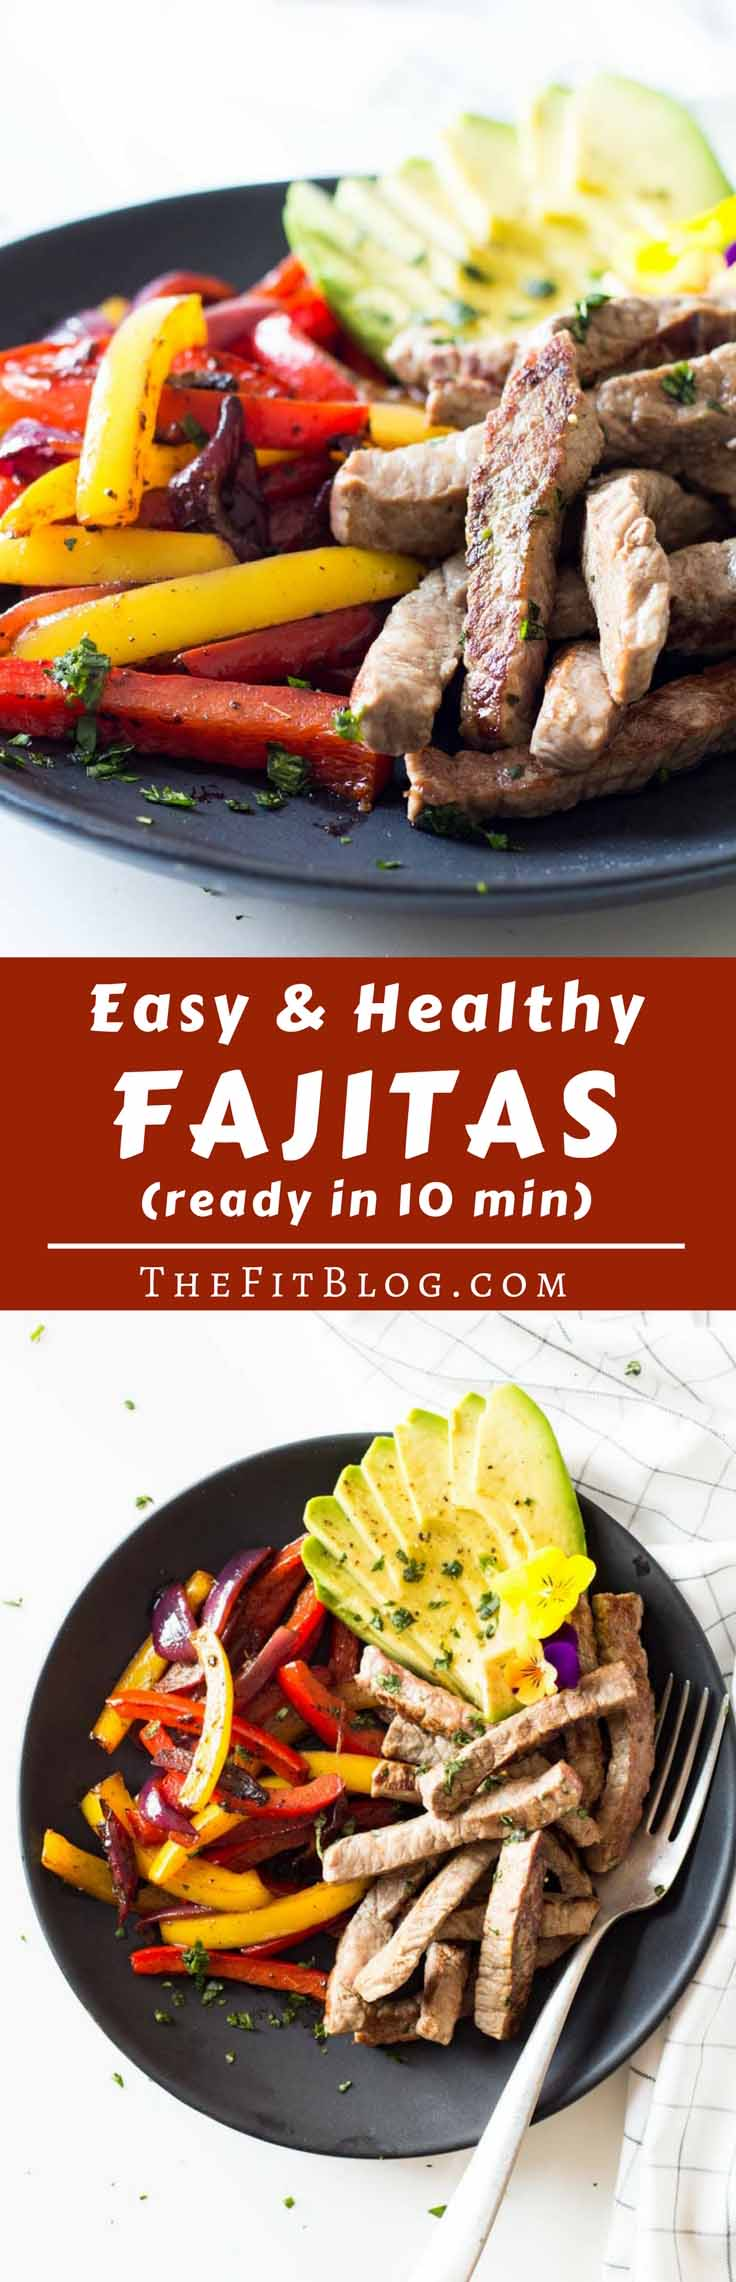 Healthy & Easy Beef Fajitas – You can make this fajita recipe in only 15 min. to get a delicious and healthy high-protein dinner